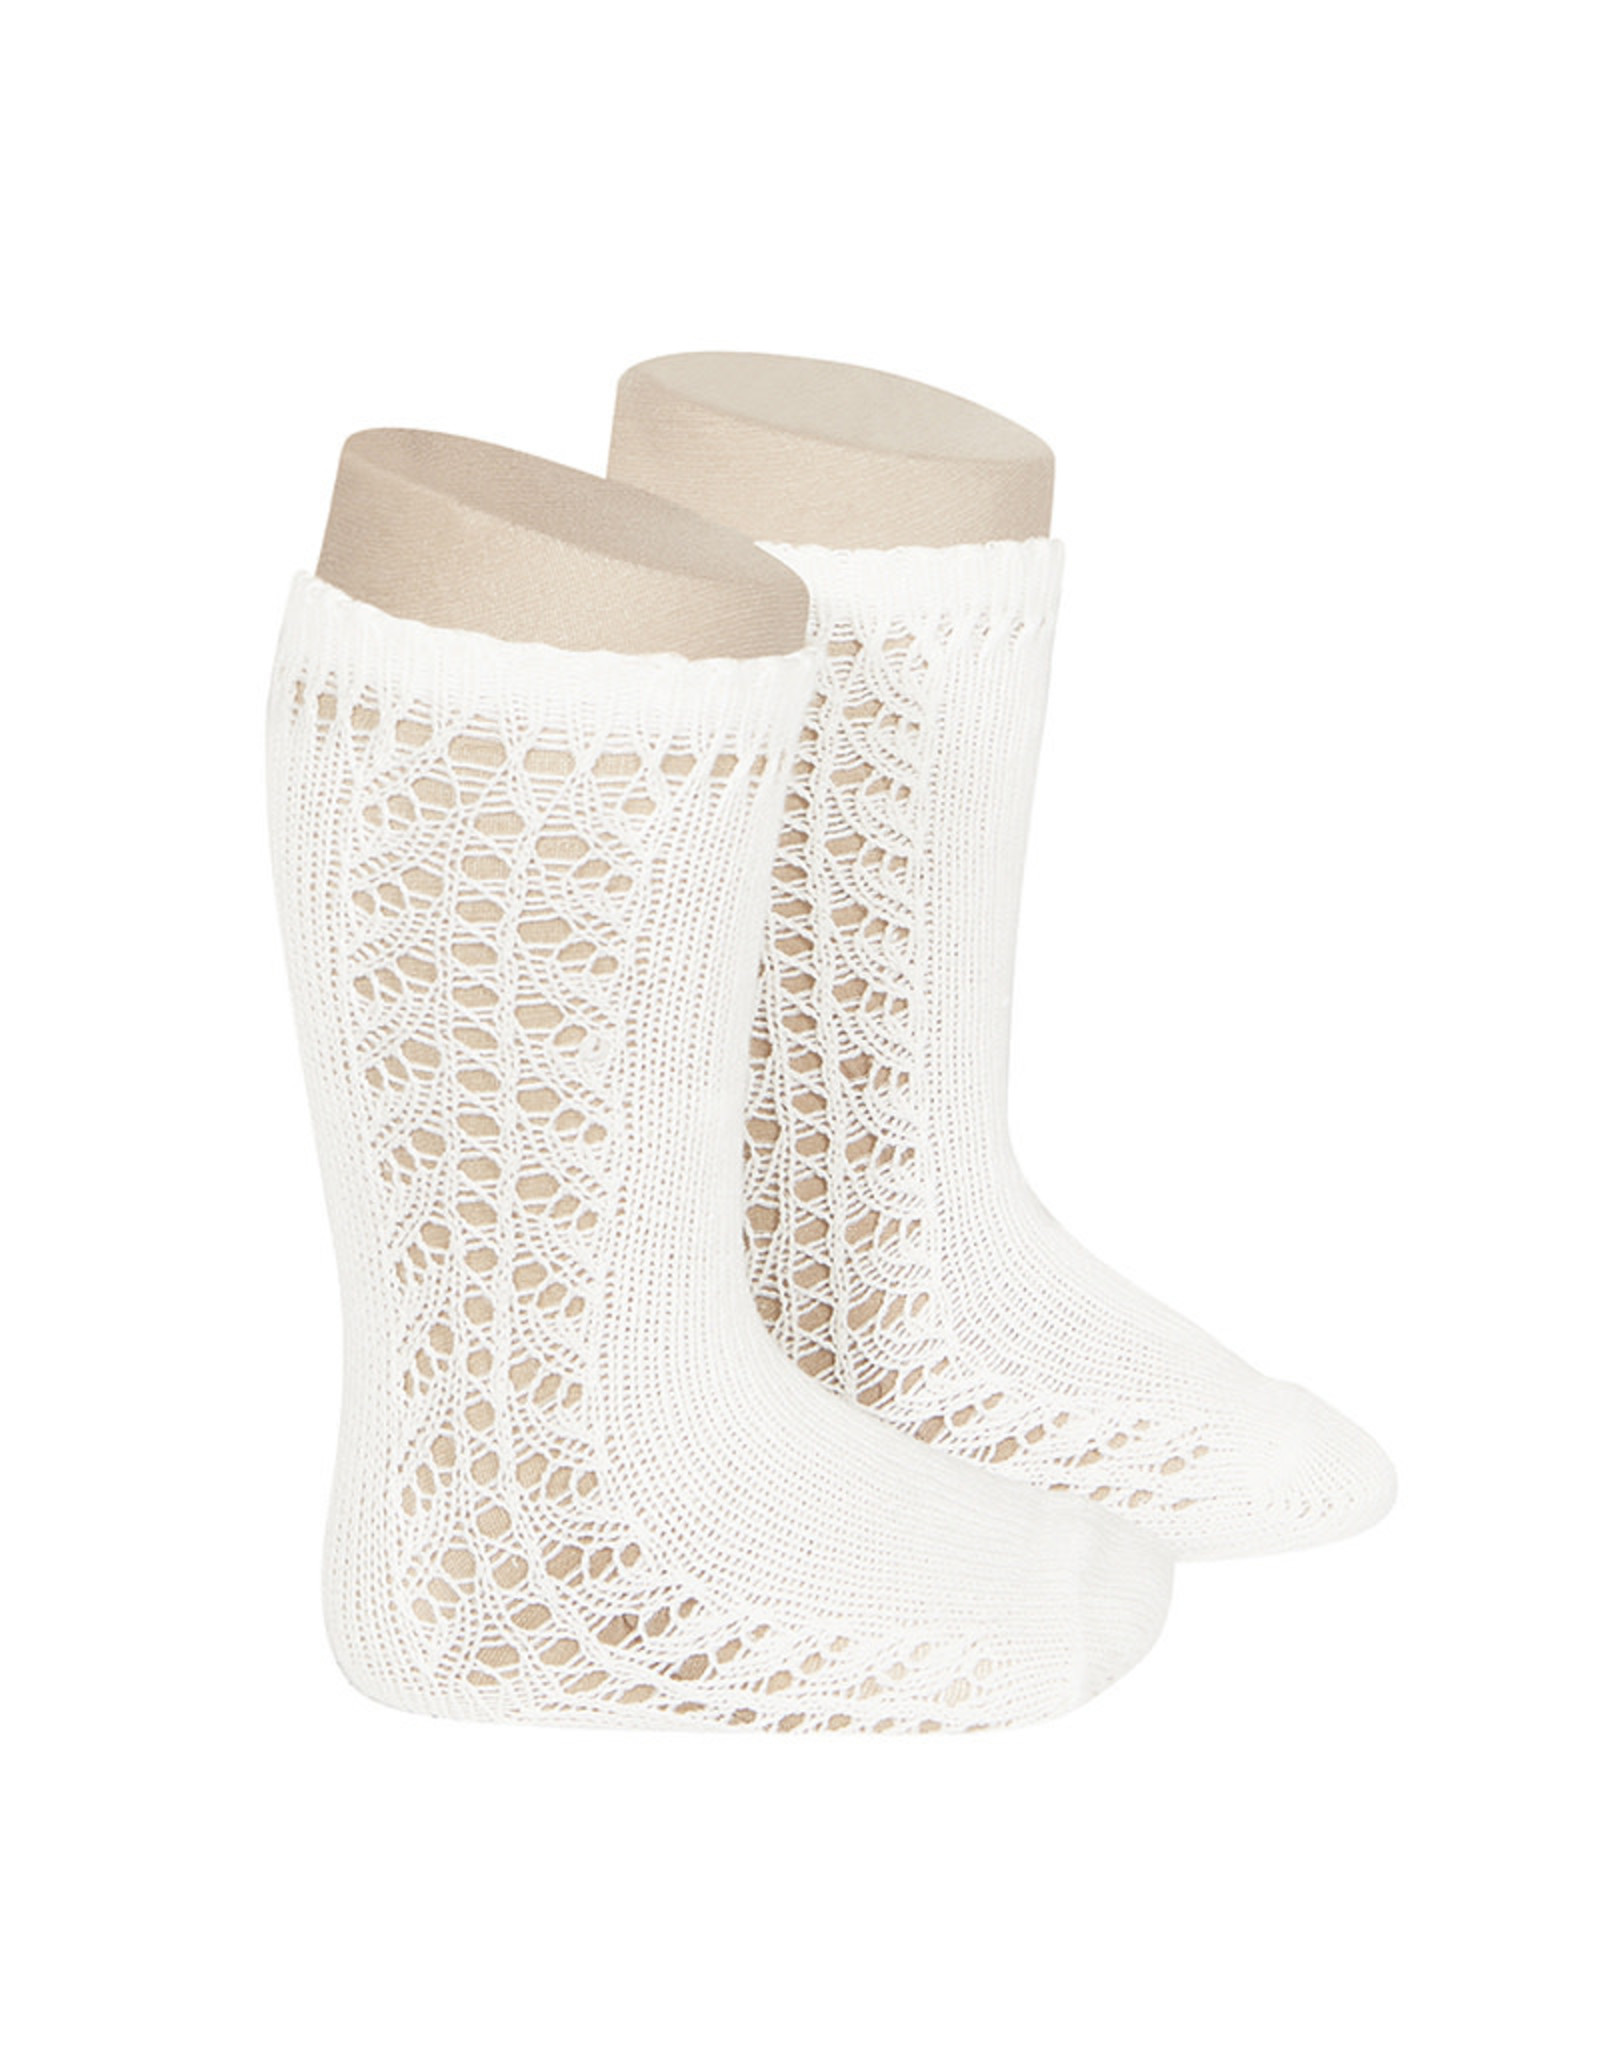 CONDOR Cream Warm Side Openwork Socks